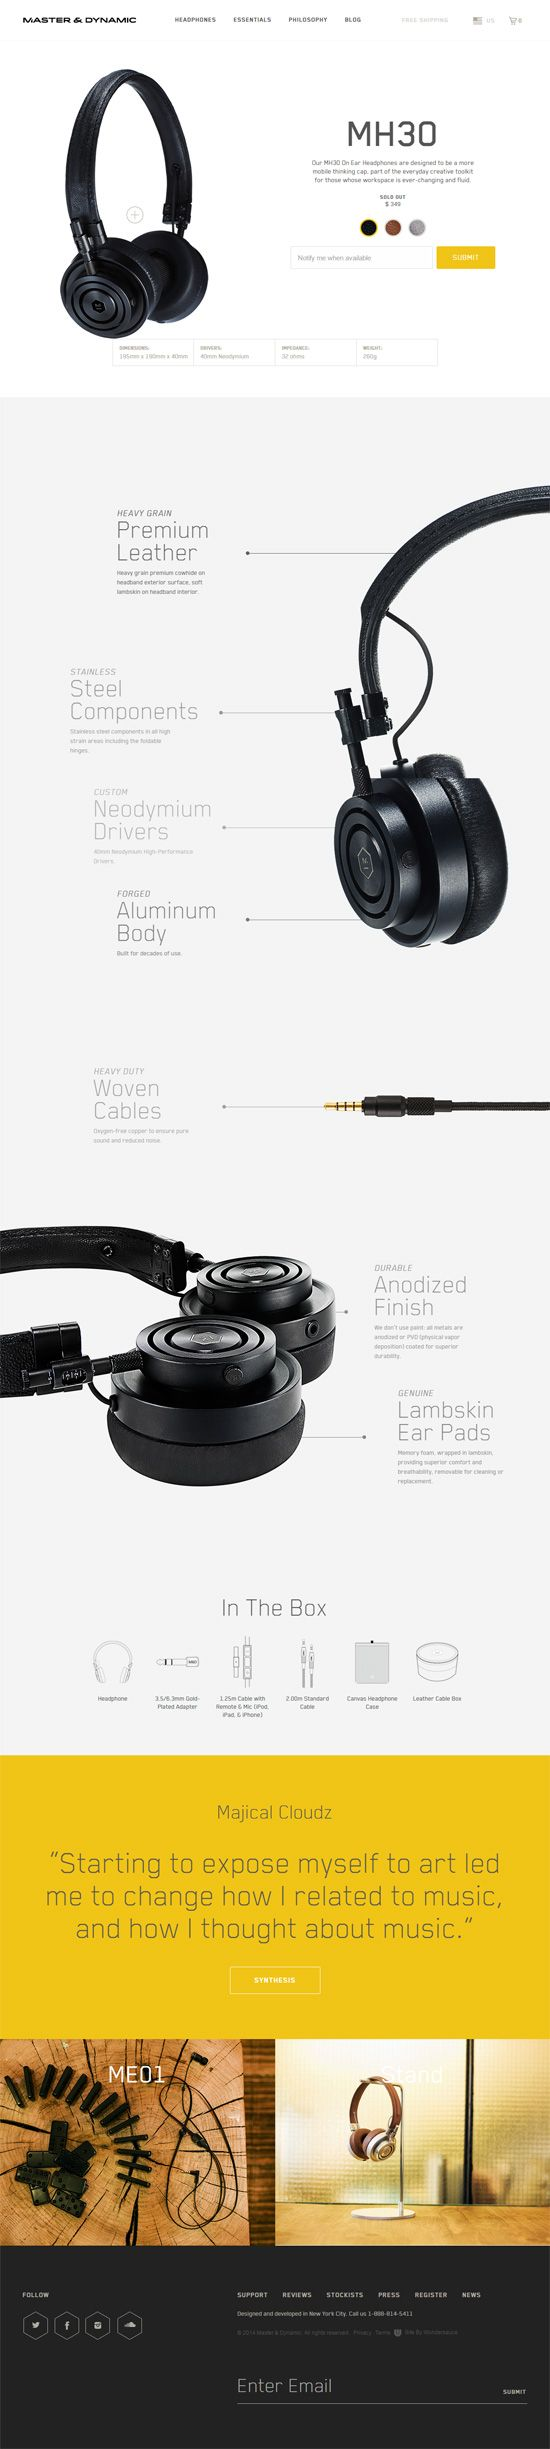 30 Beautiful Ecommerce Product Page Designs